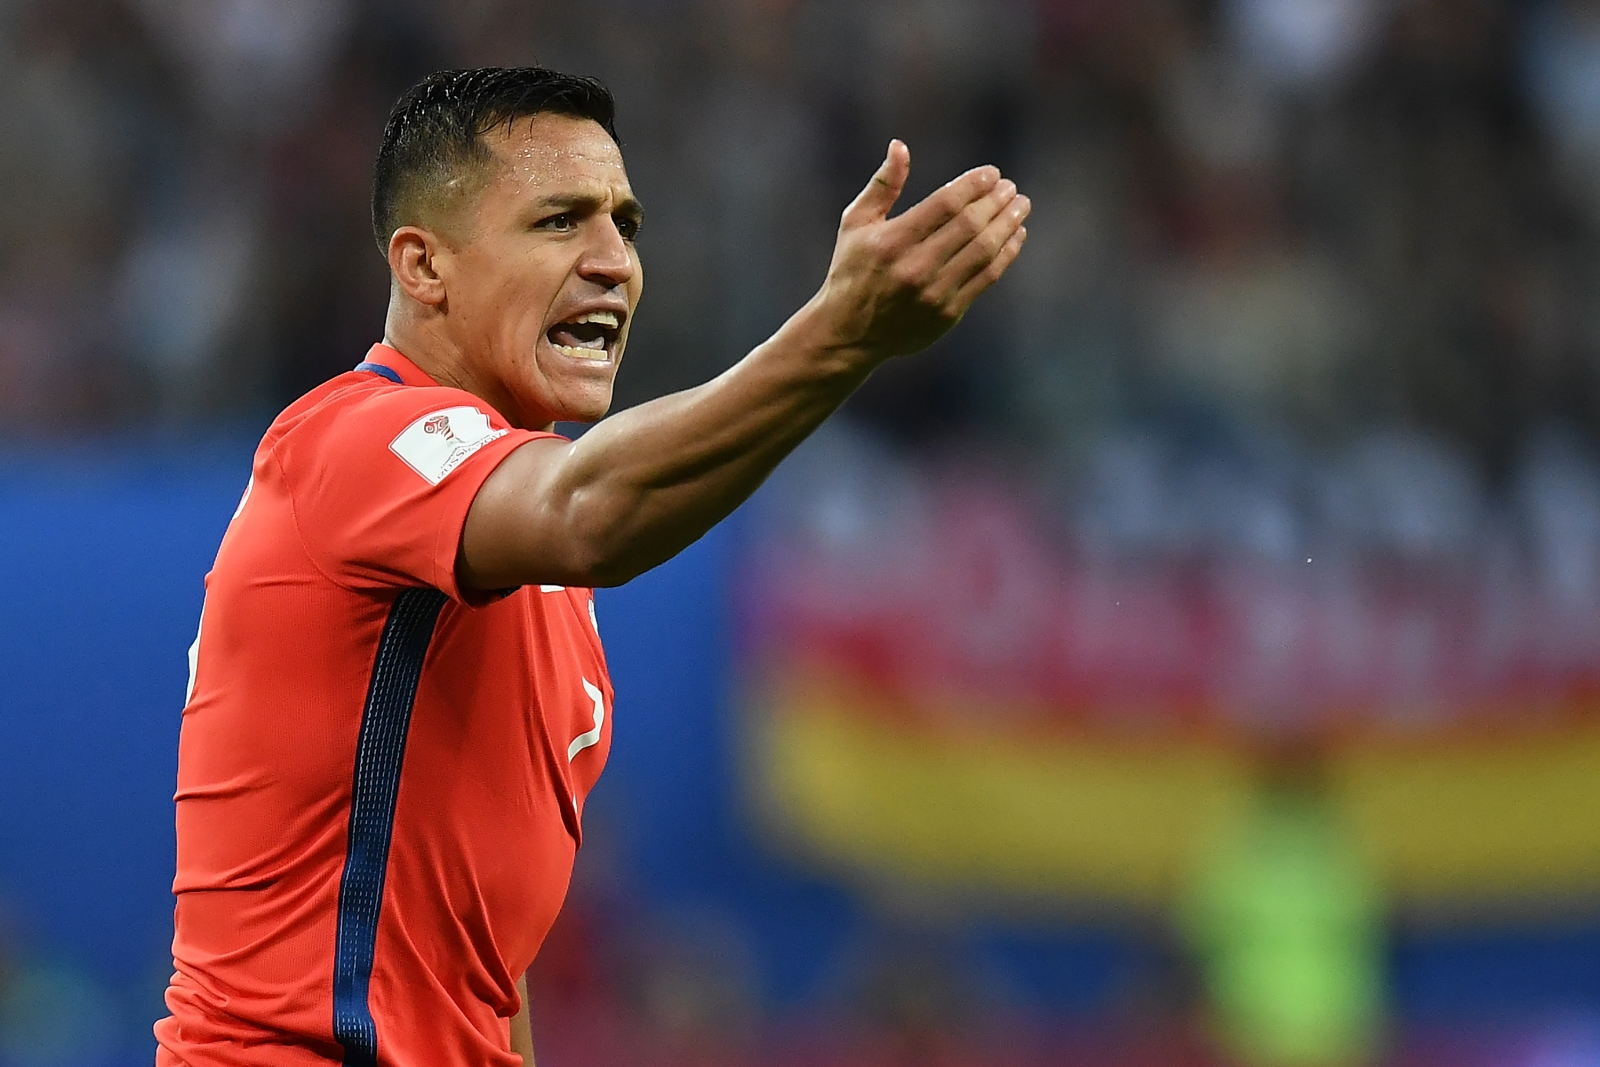 Bayern Munich play down reports of interest in Arsenal star Alexis Sanchez